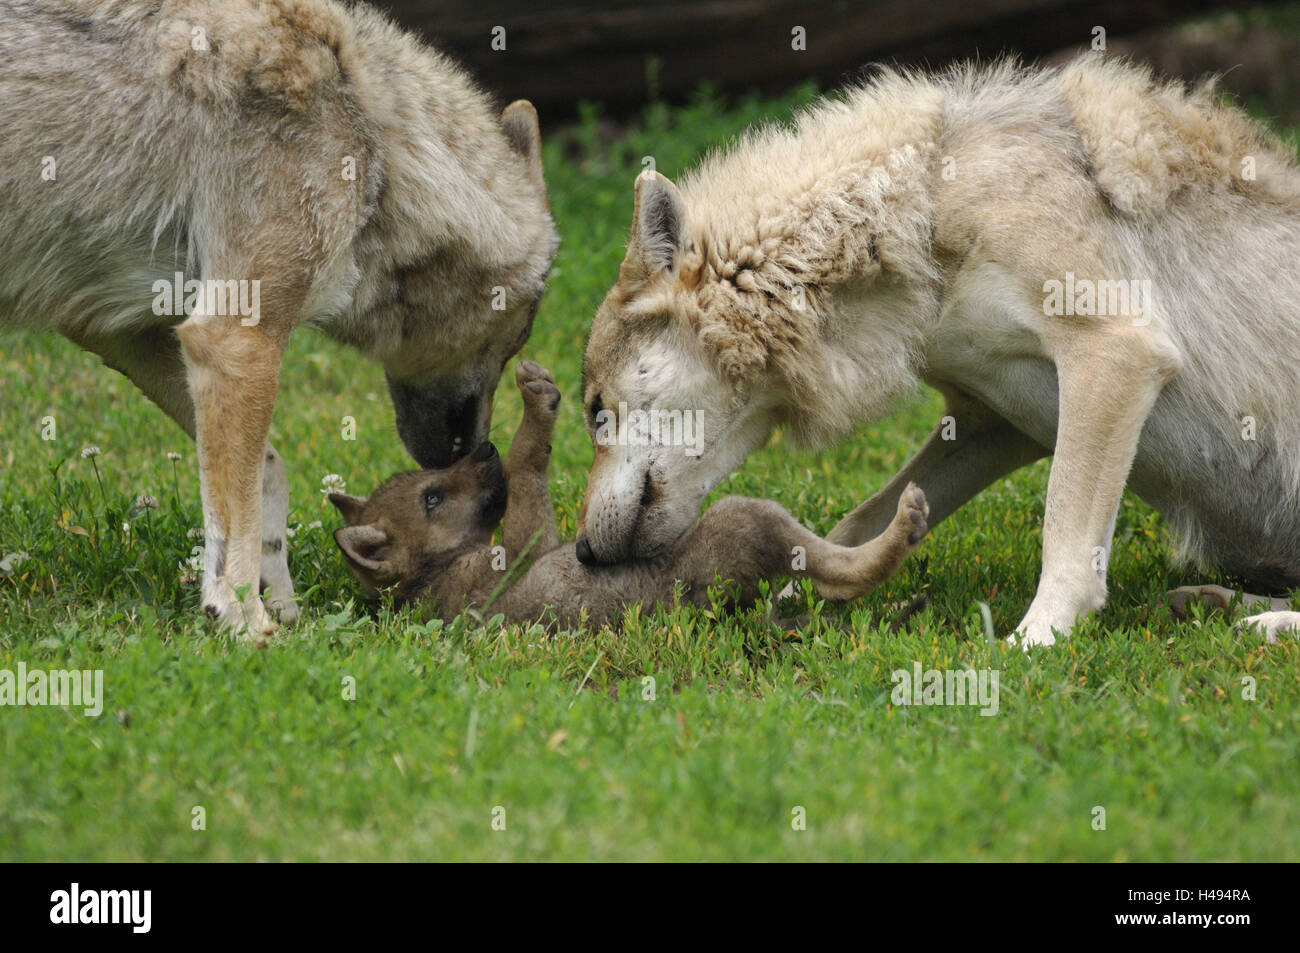 Wolves, Canis lupus, parental animals, young animal, - Stock Image